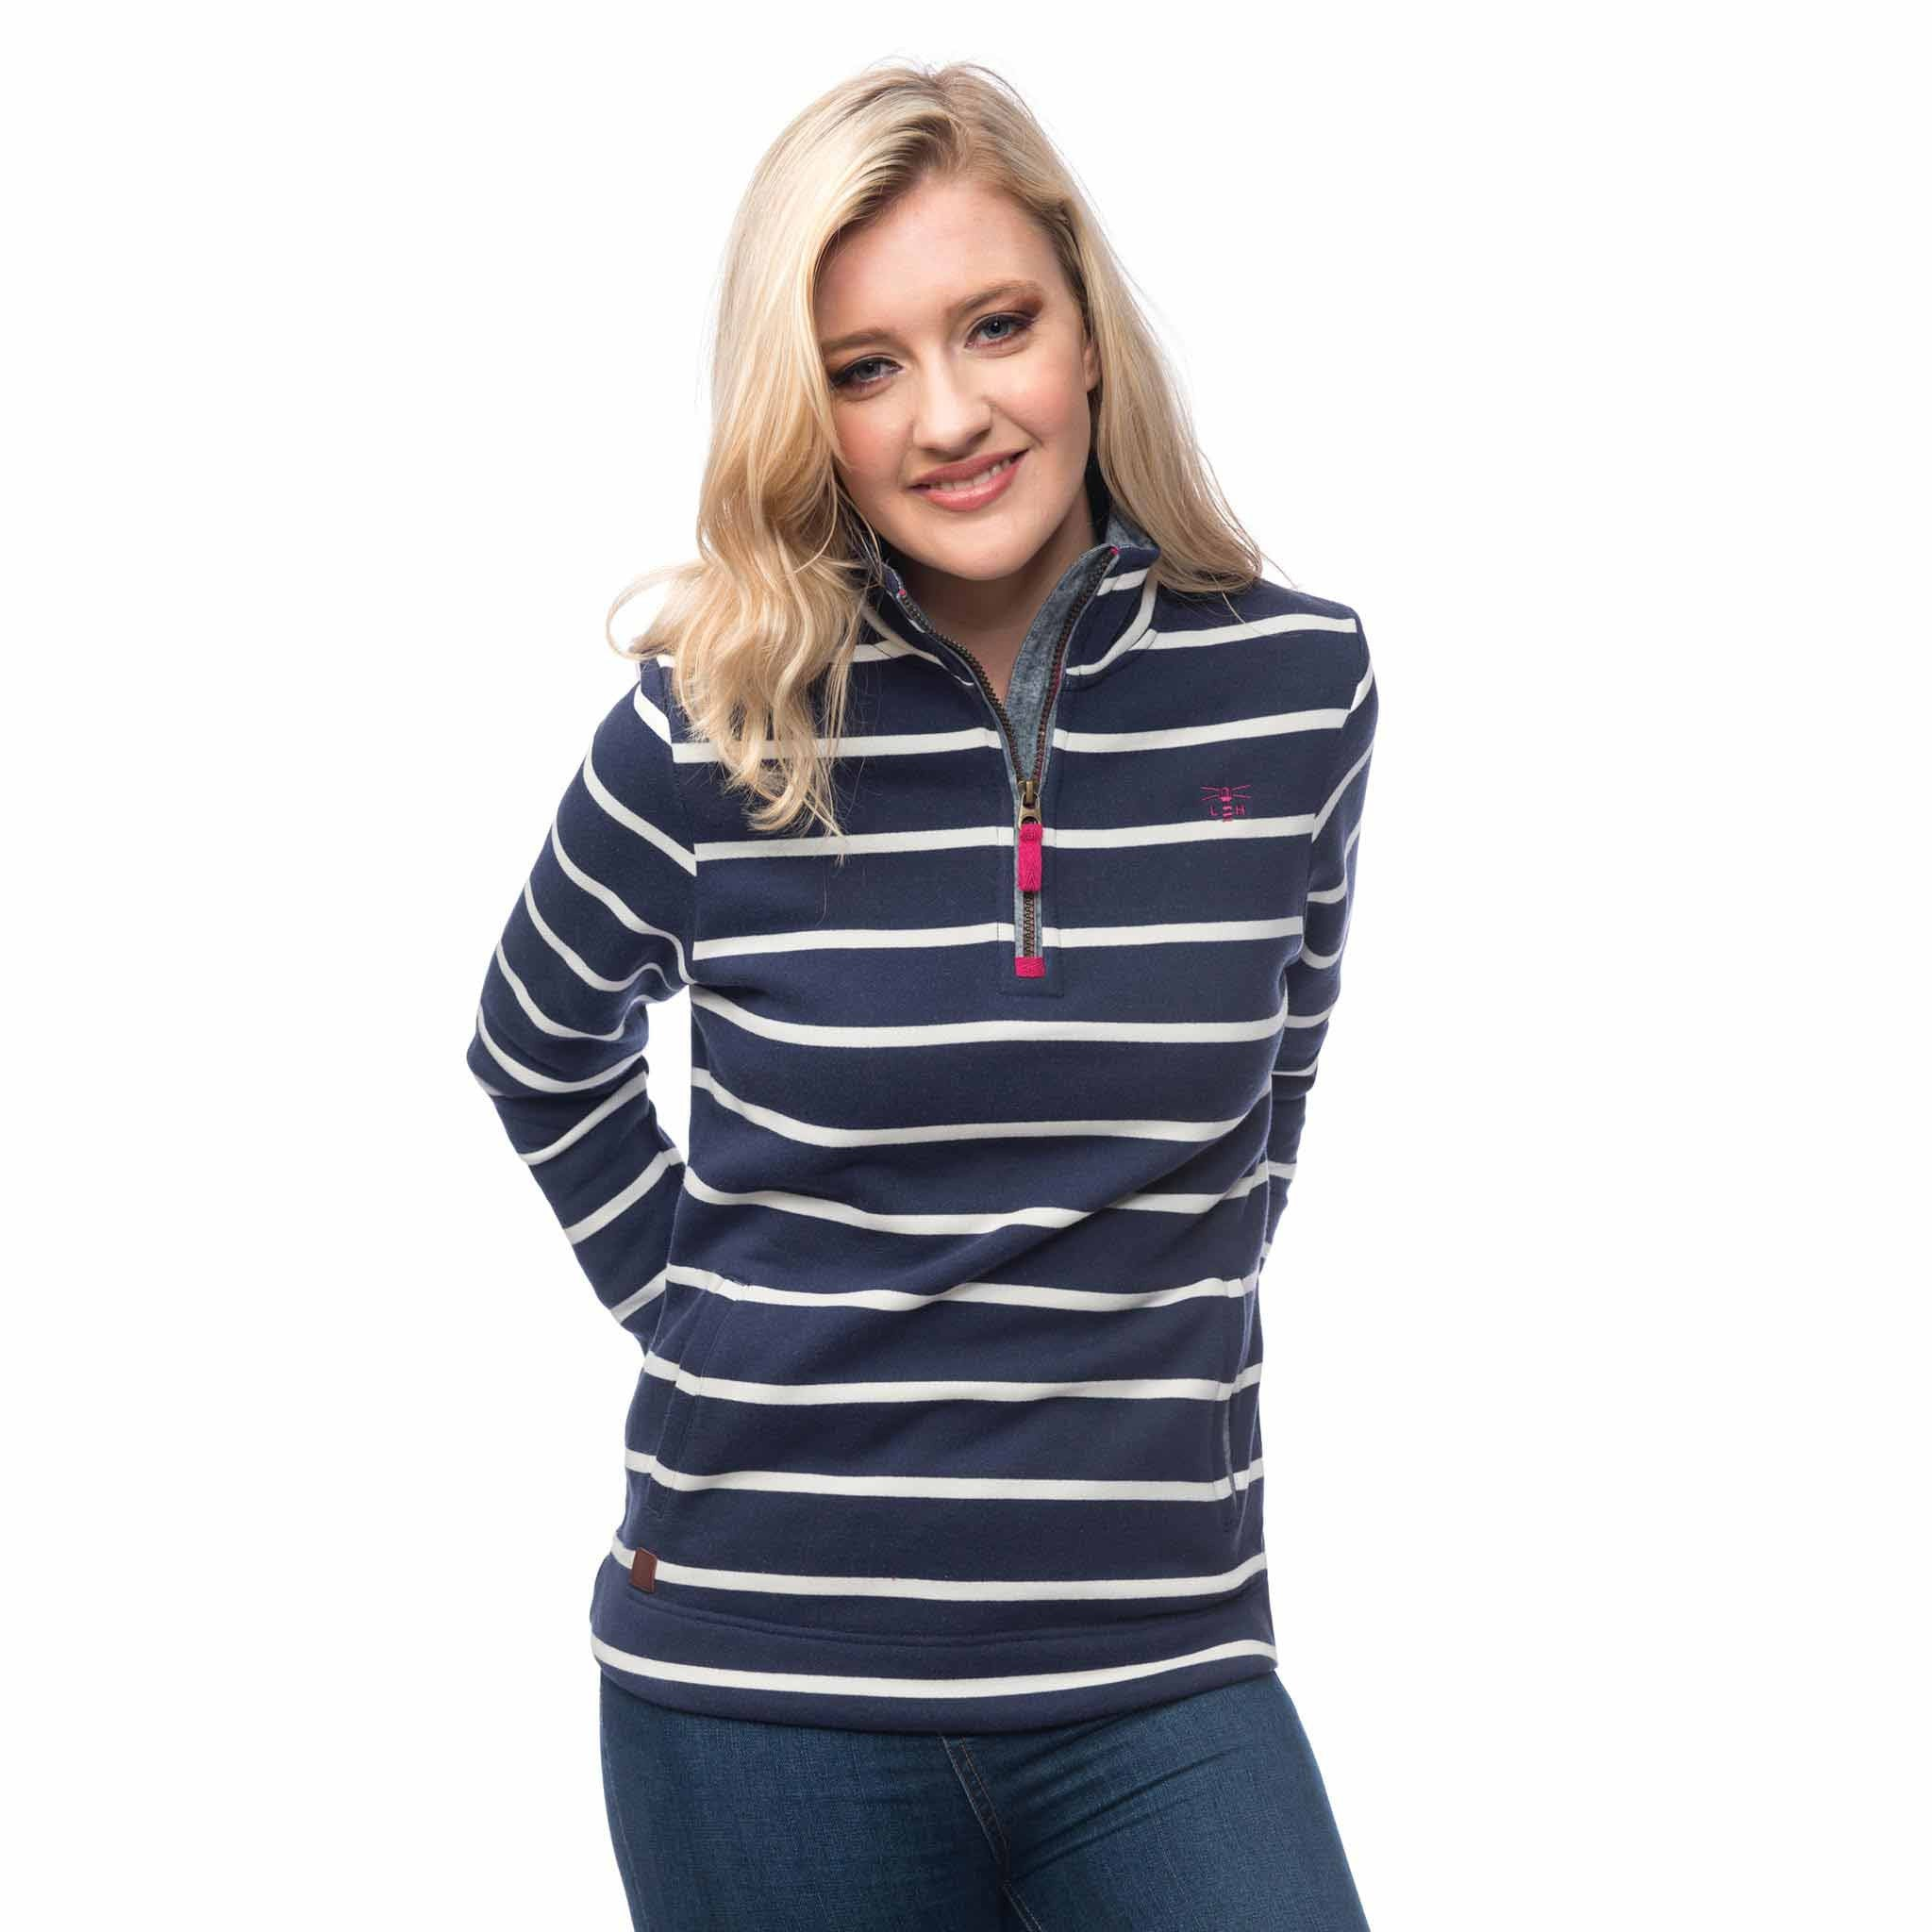 Lighthouse Womens Skye Half Zip Cotton Sweatshirt in Navy stripe.